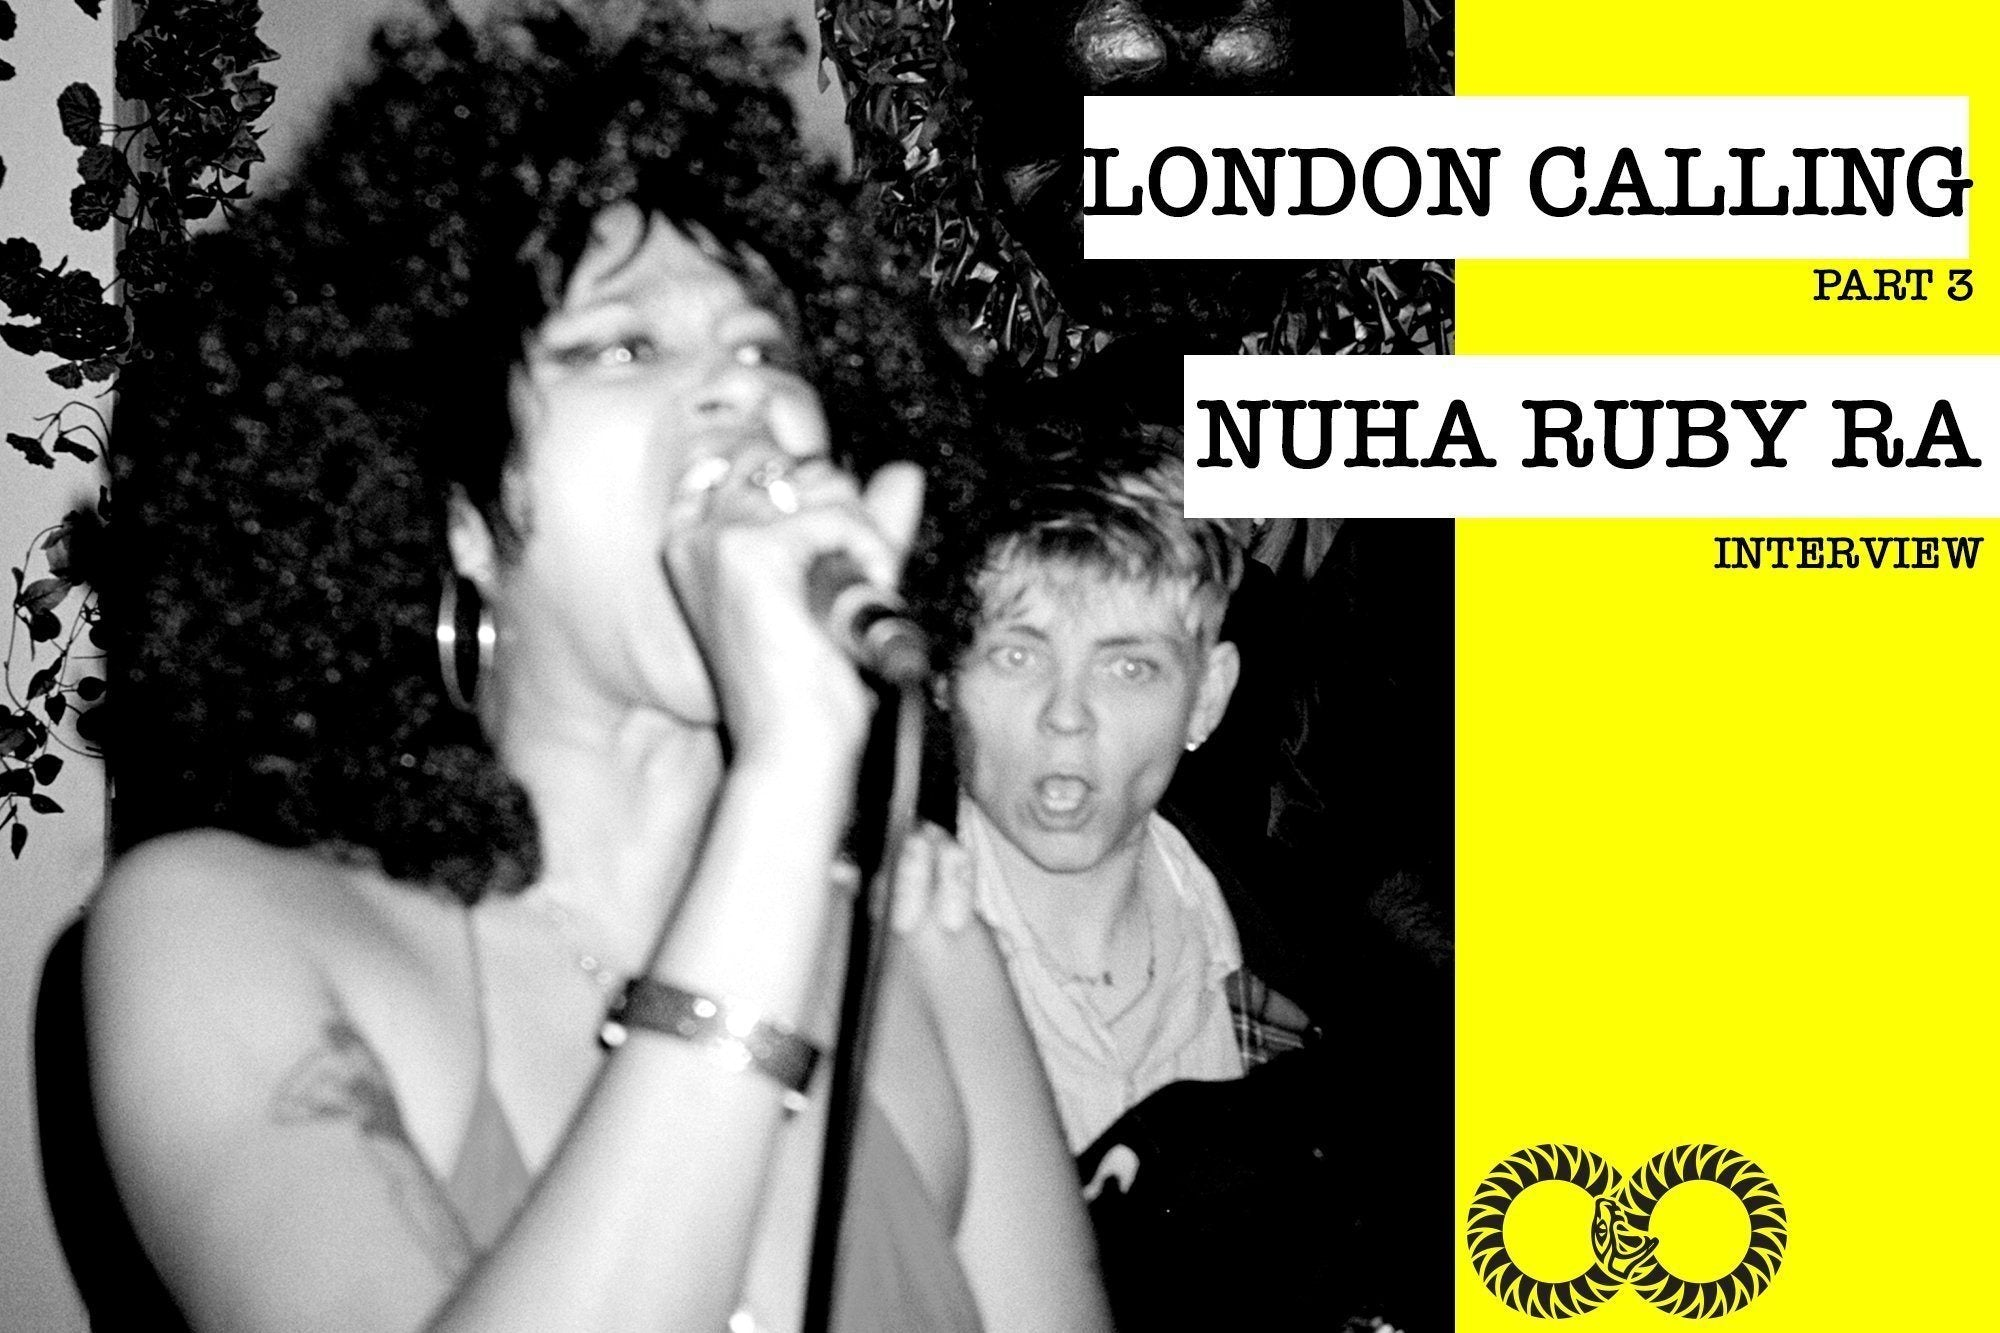 LONDON CALLING (Part 3) | Nuha Ruby Ra Interview